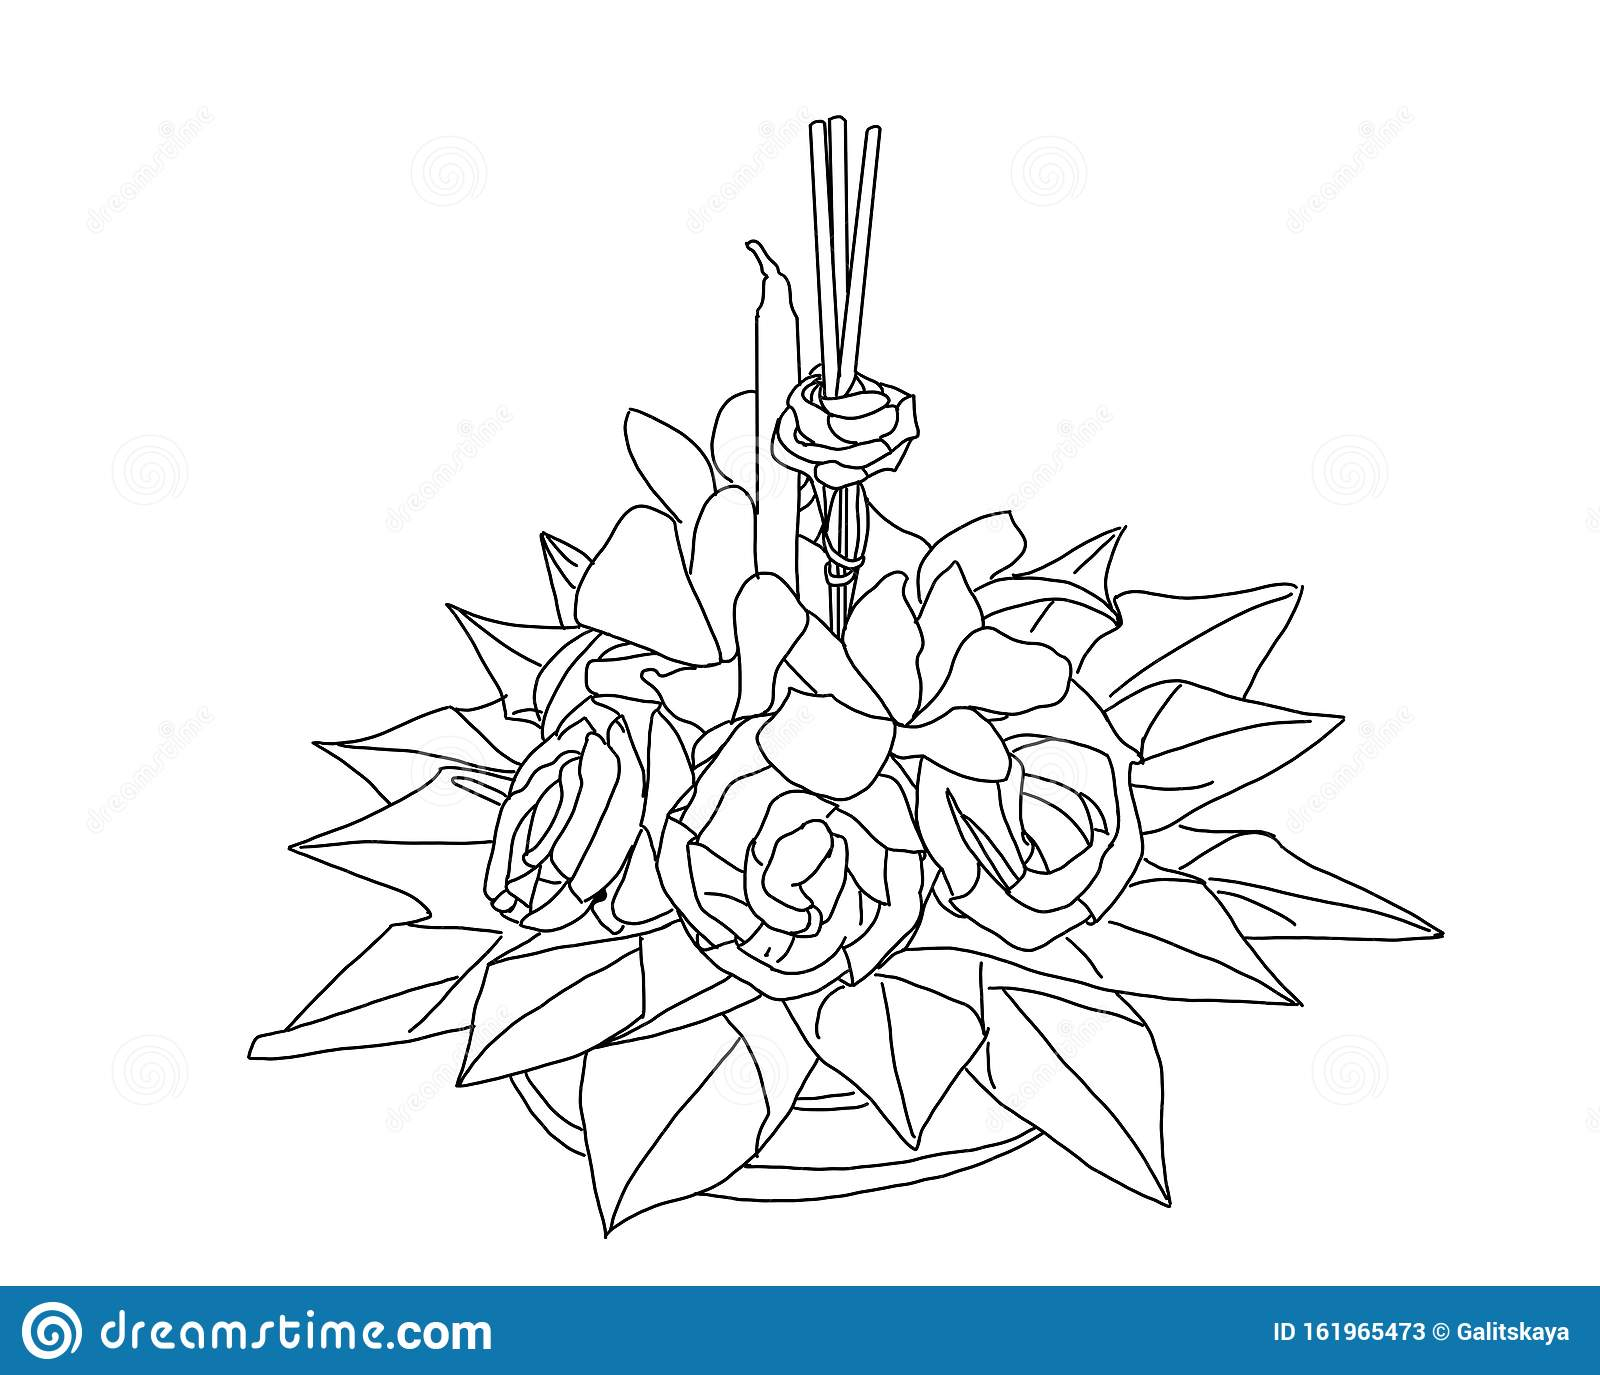 A Black And White Sketch Of A Floating Loy Kratong